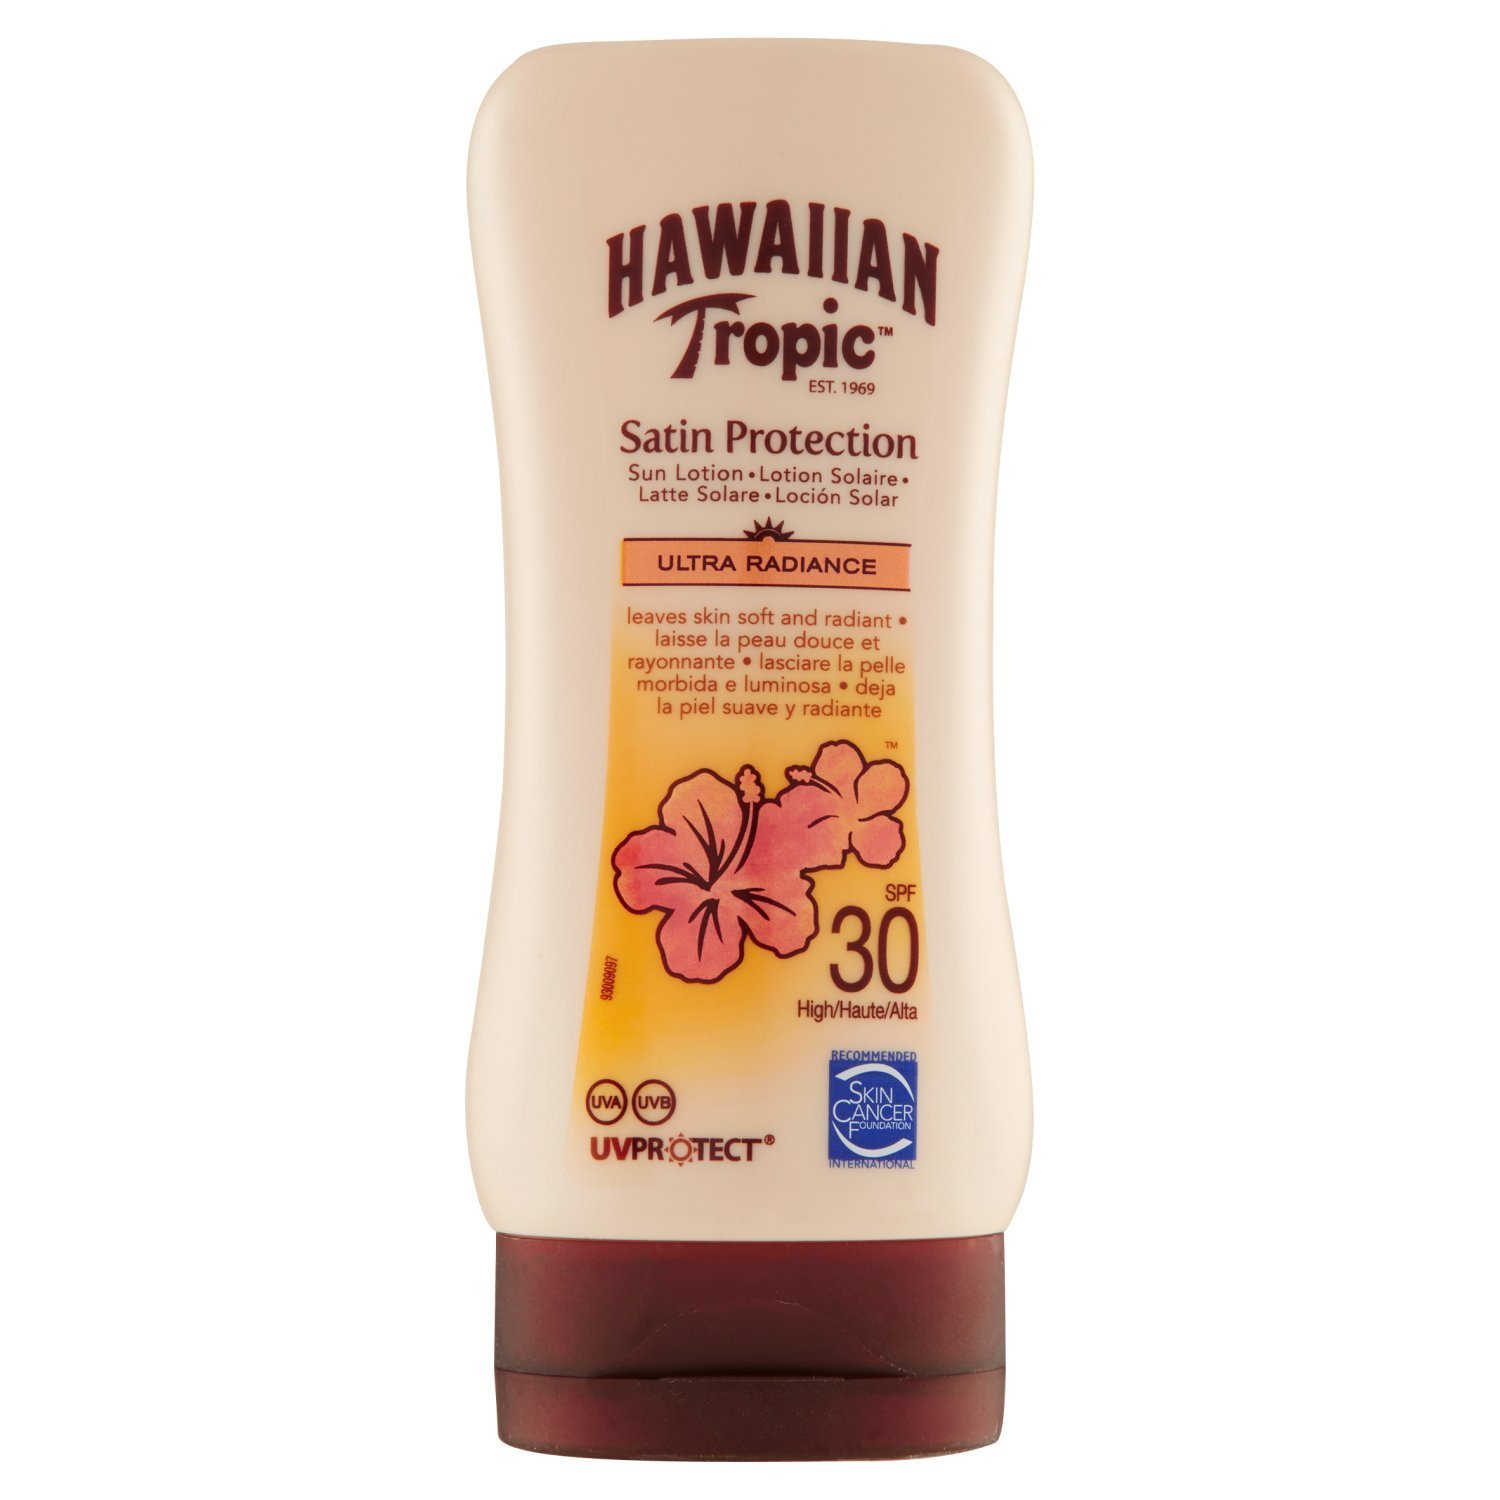 Hawaiian Tropic Satin Protection Sun Lotion Sonnencreme LSF 30, 180 ml, 1 St